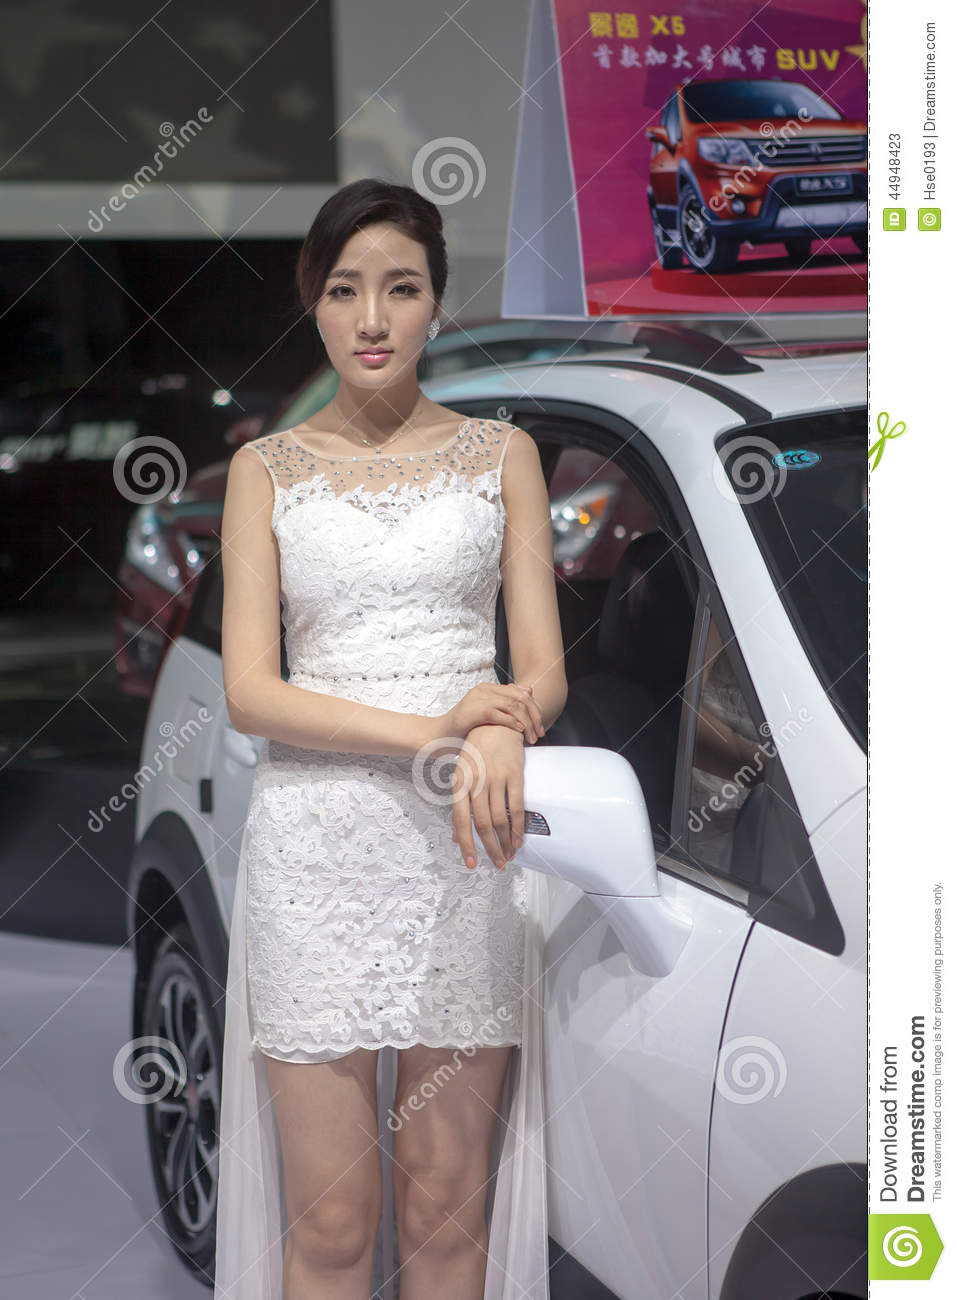 chinese car models - photo #27